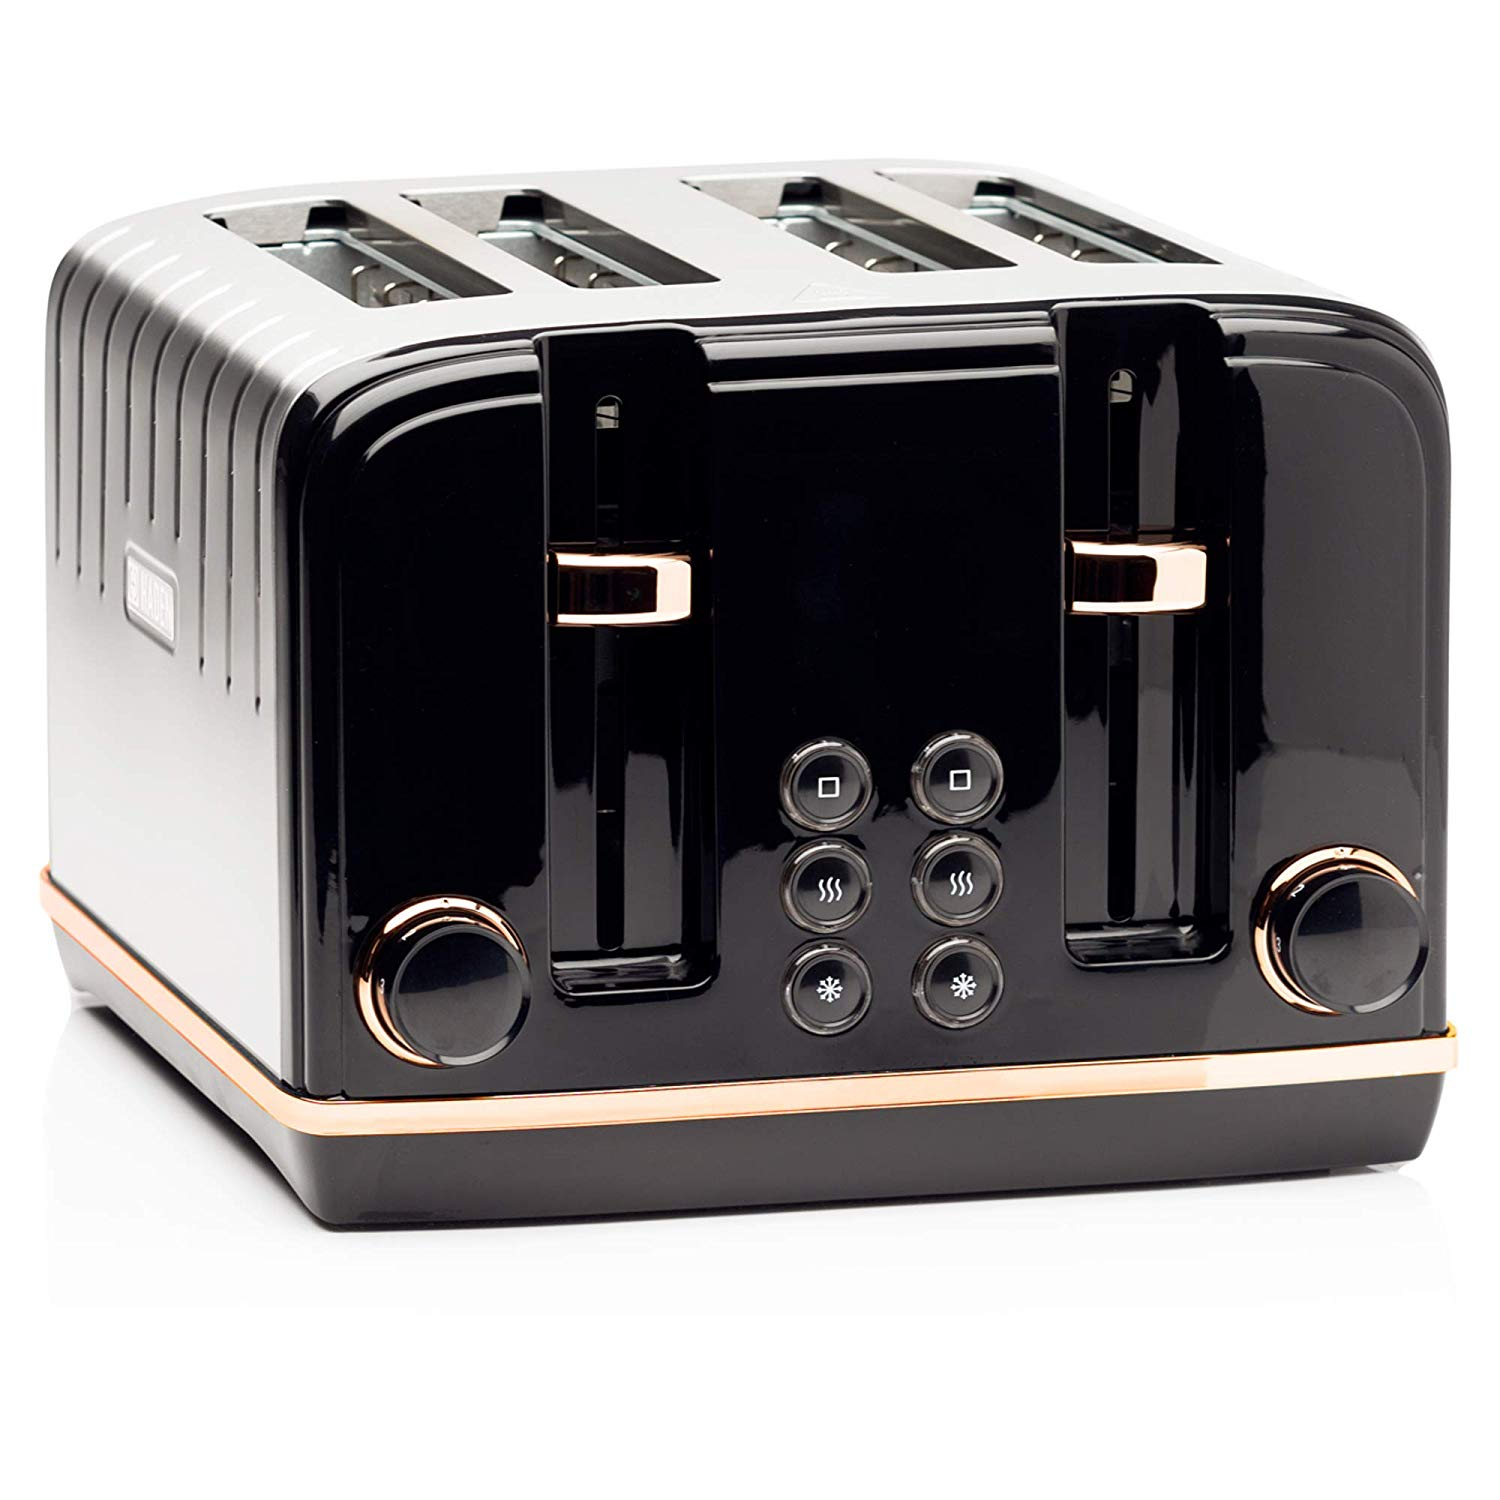 Haden Salcombe 4 Slice Toaster Black & Copper